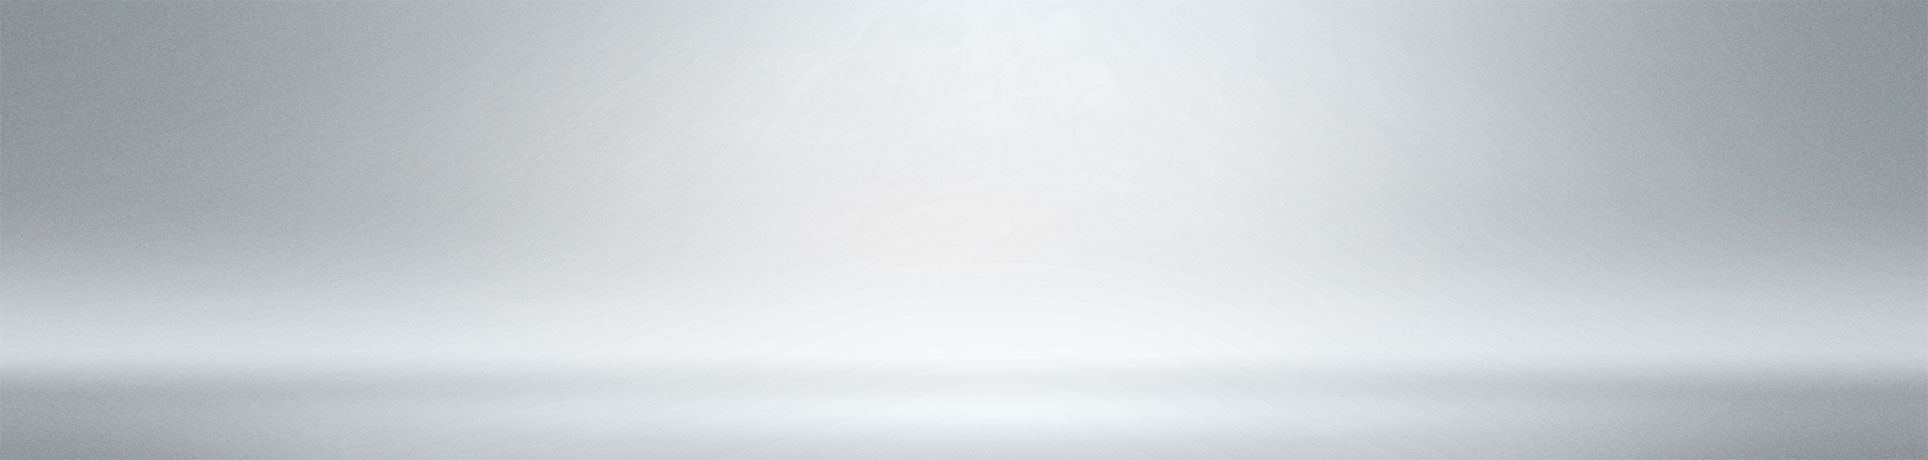 Slider-04-Background